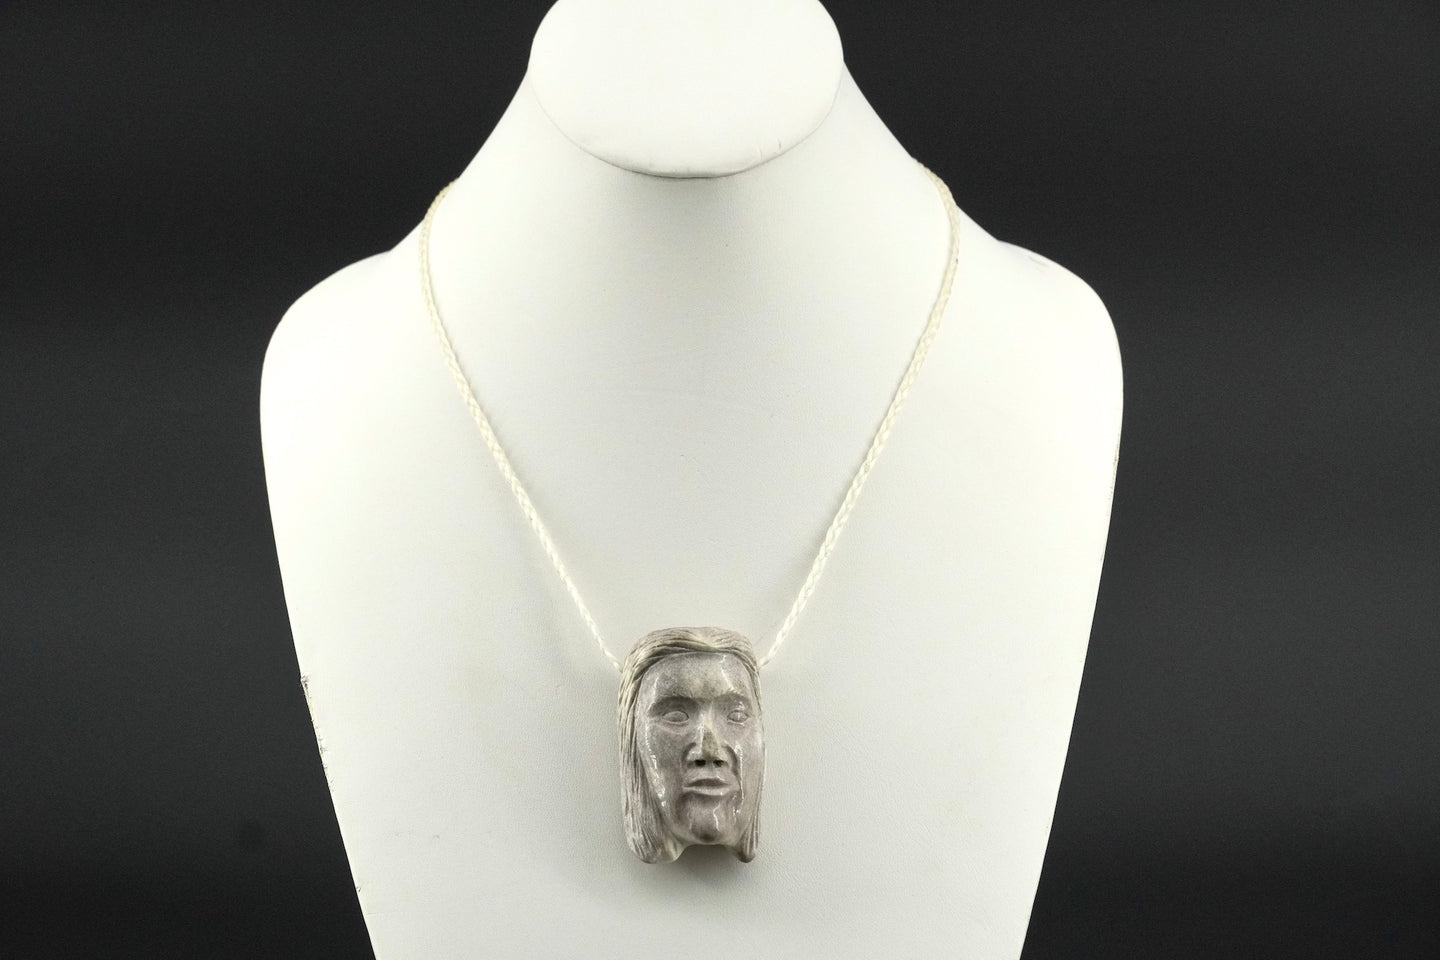 Grandma Mask Necklace by Dennis Shorty